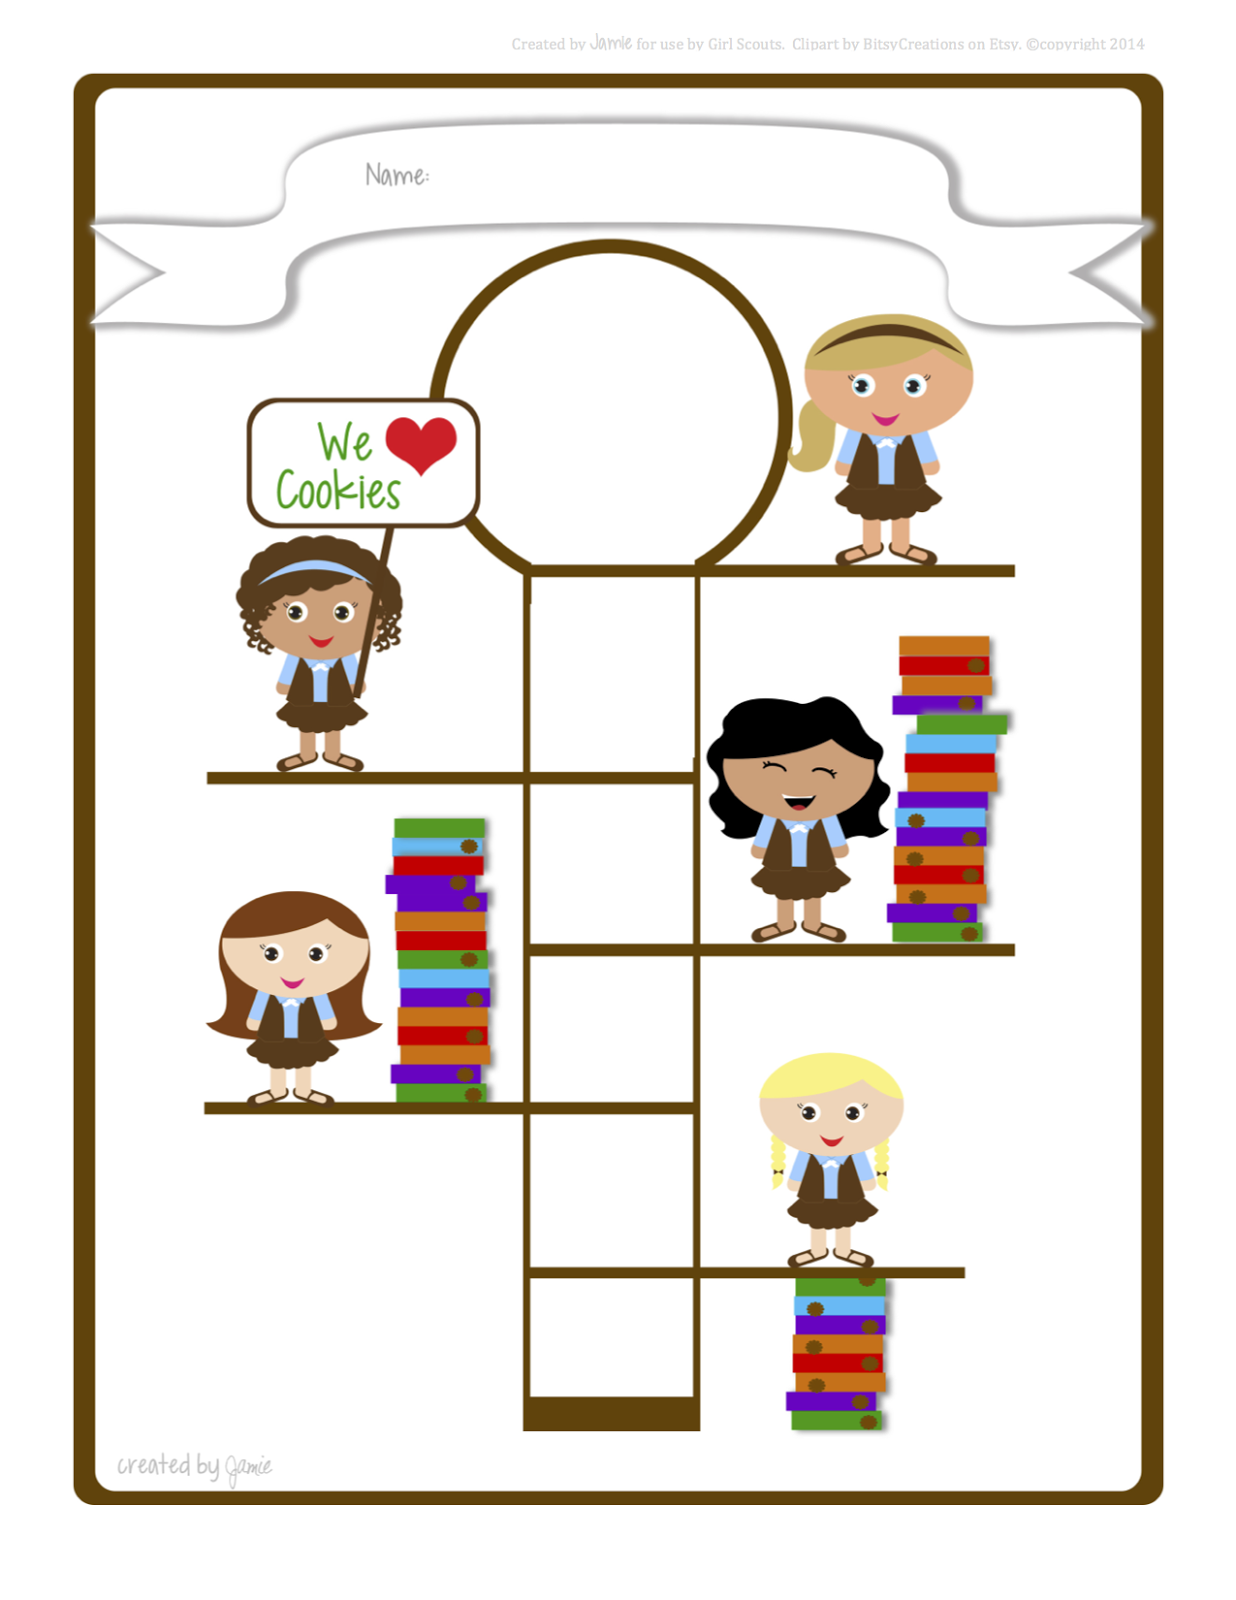 My Fashionable Designs Girl Scouts Cookie Goal Poster